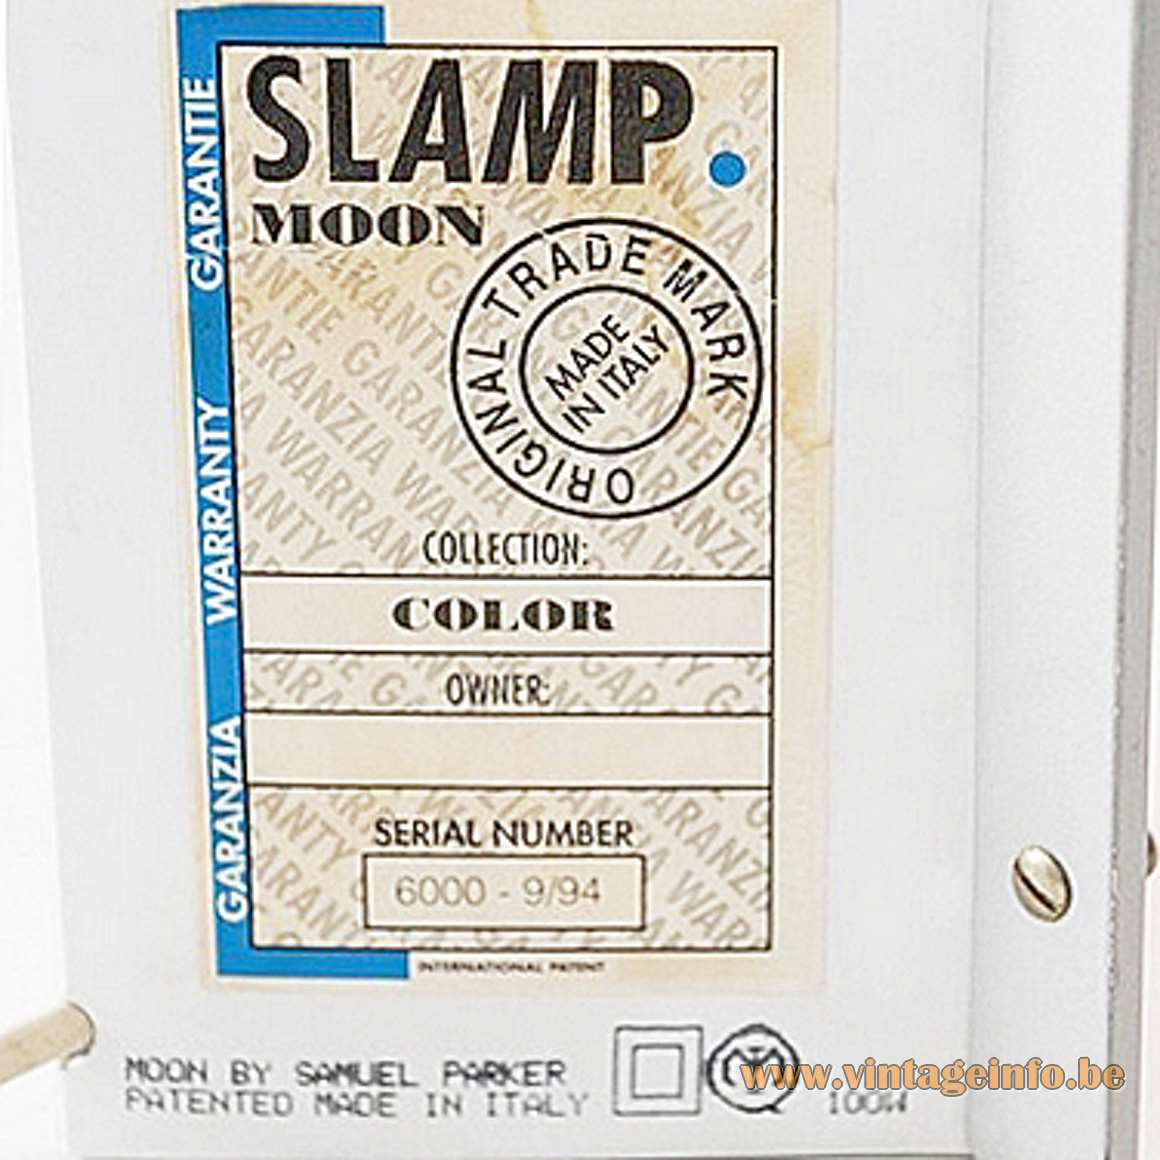 Slamp Moon Table Lamp - 1994 label